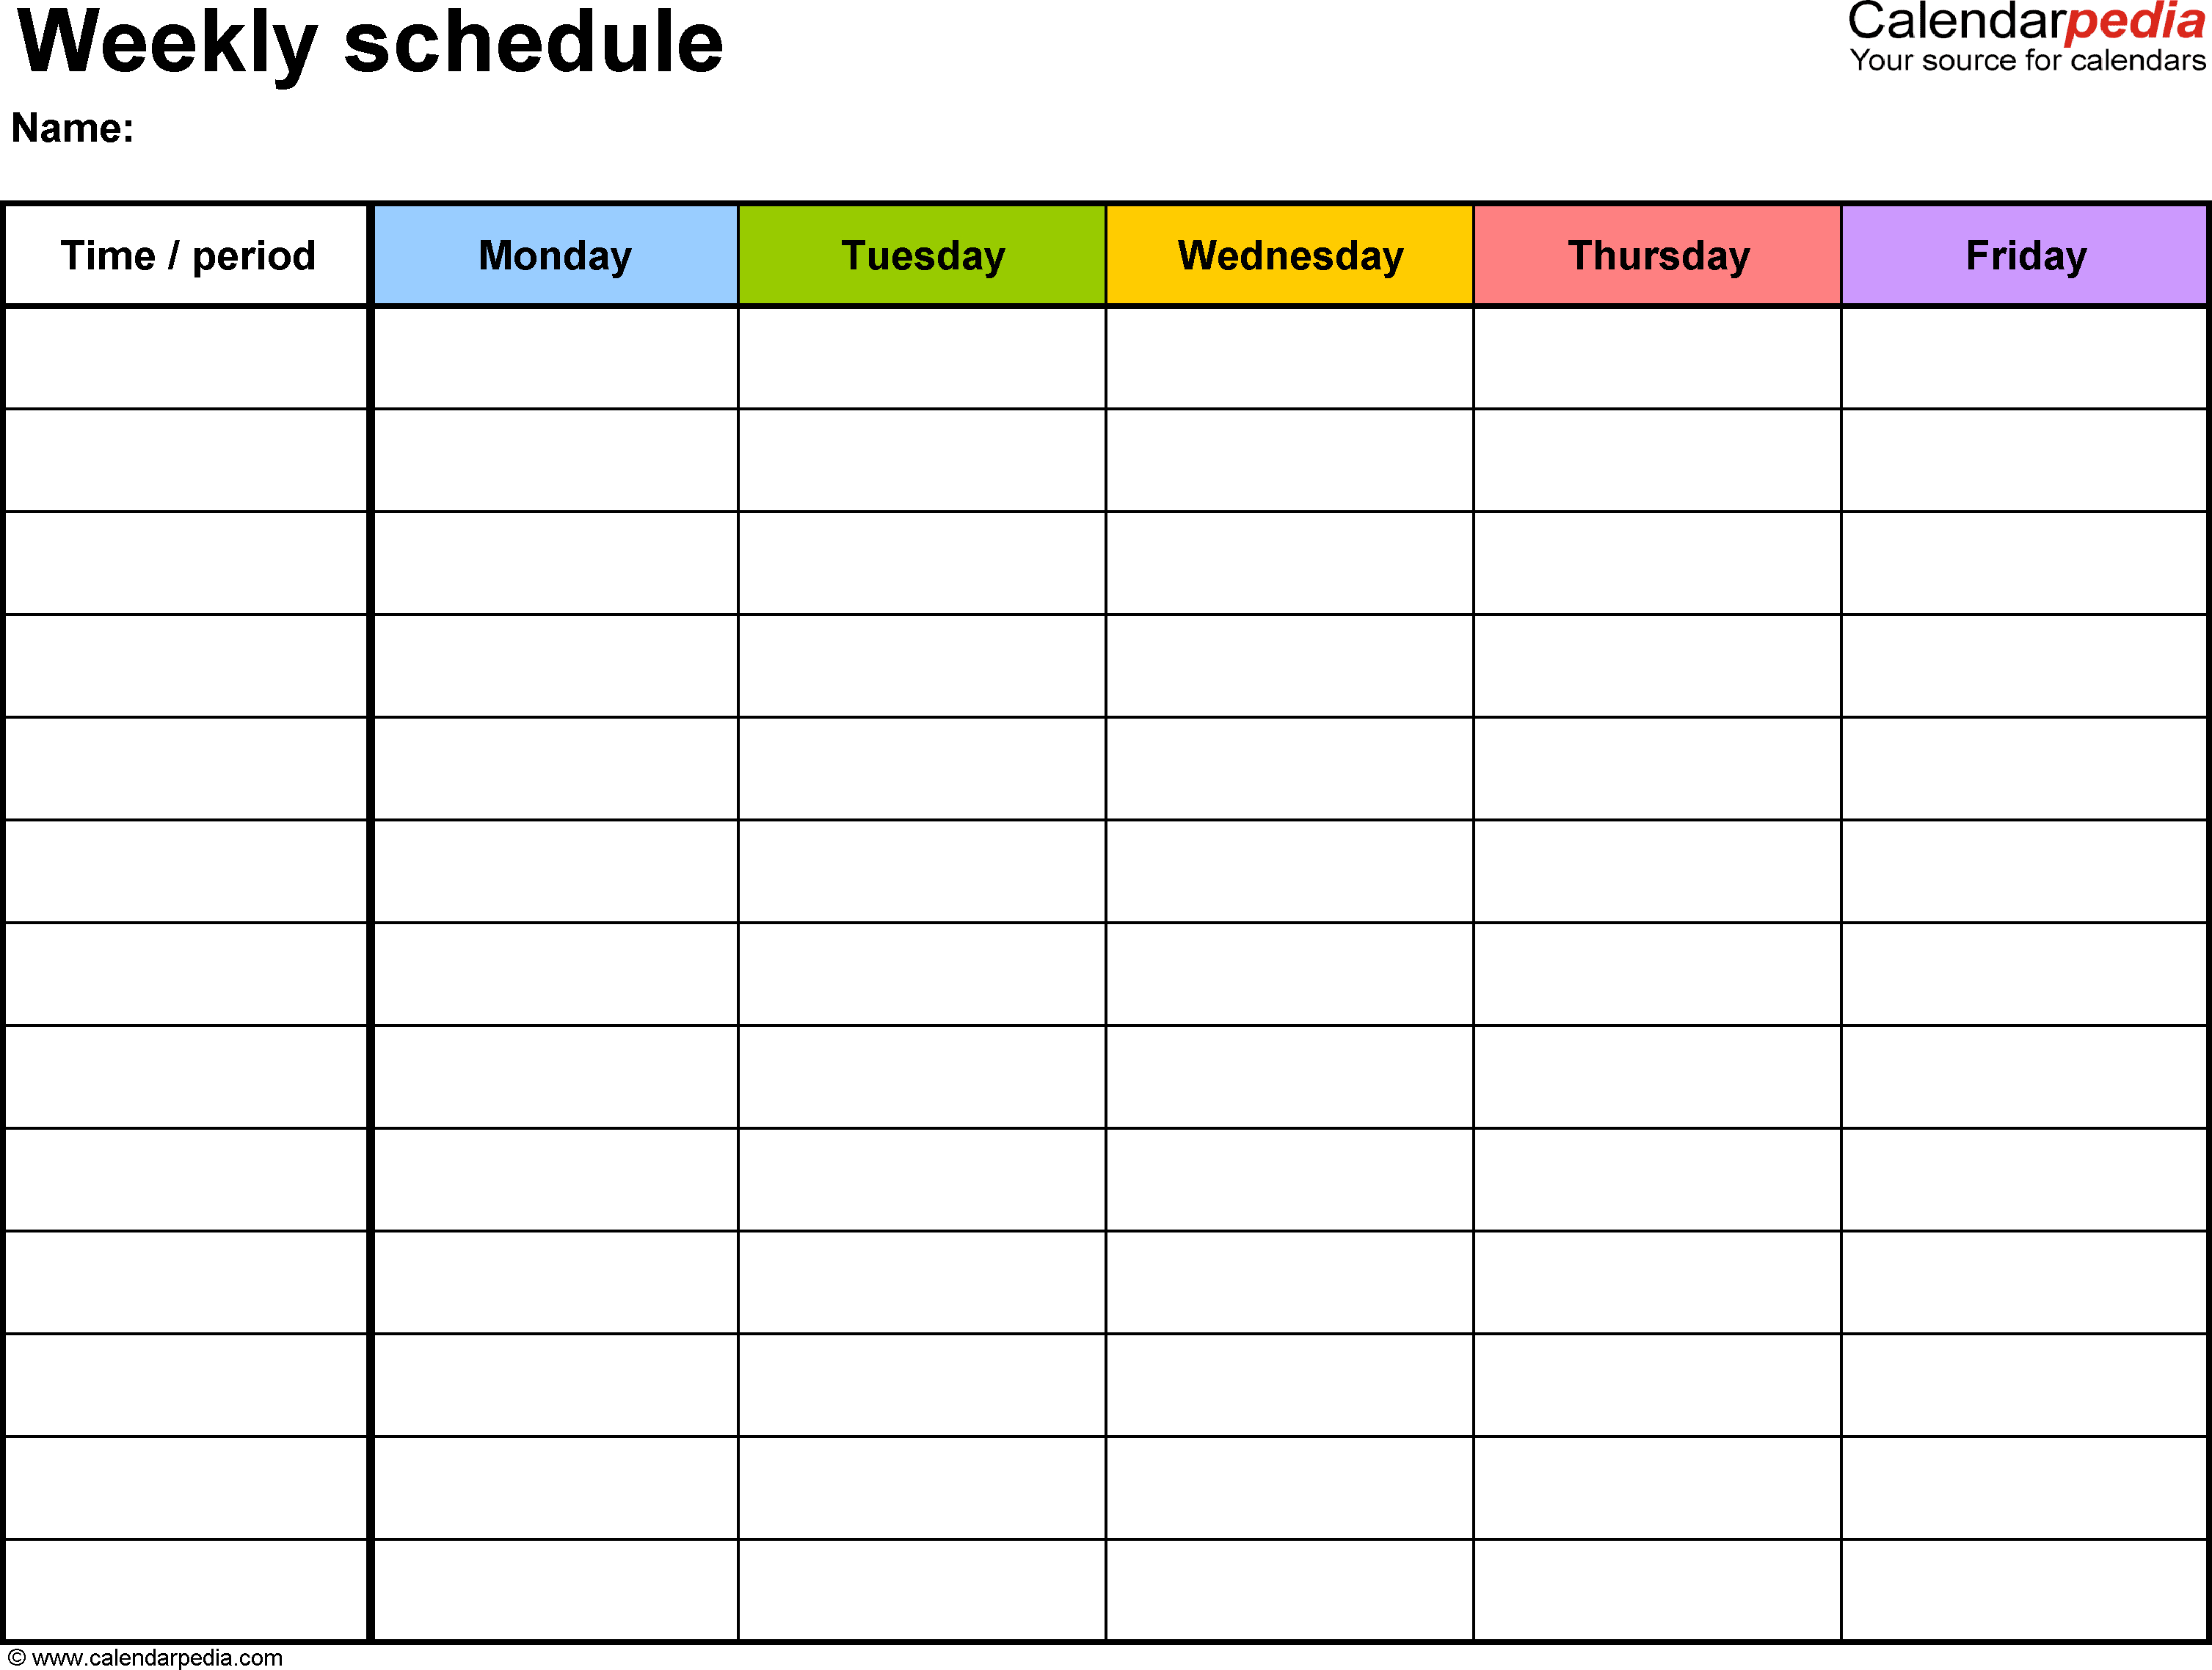 Weekly Schedule Template For Word Version 1: Landscape, 1 Monday Friday Calendar Template Word